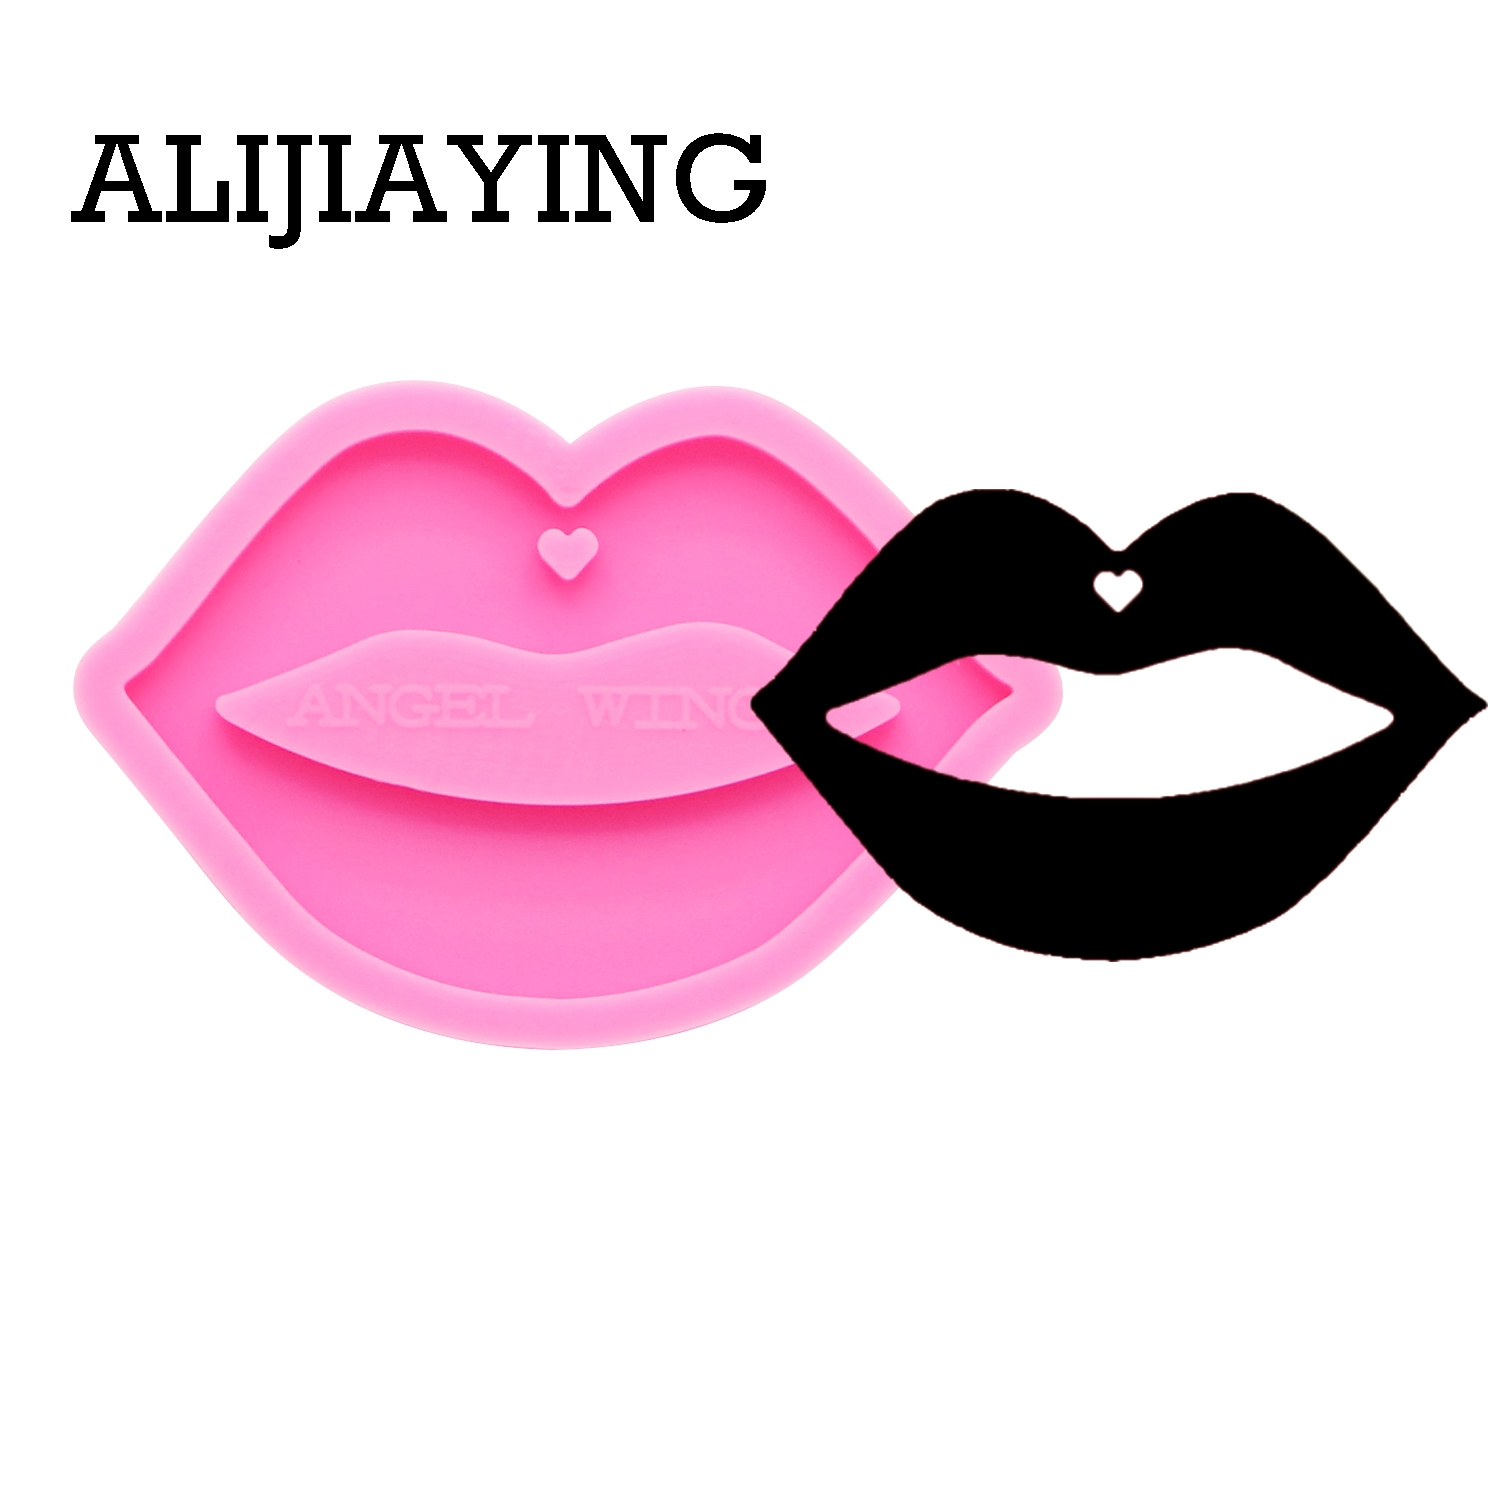 DY0170 Glossy Lips keychain silicone mold DIY mouth craft keyring pendant jewelry keychains mould